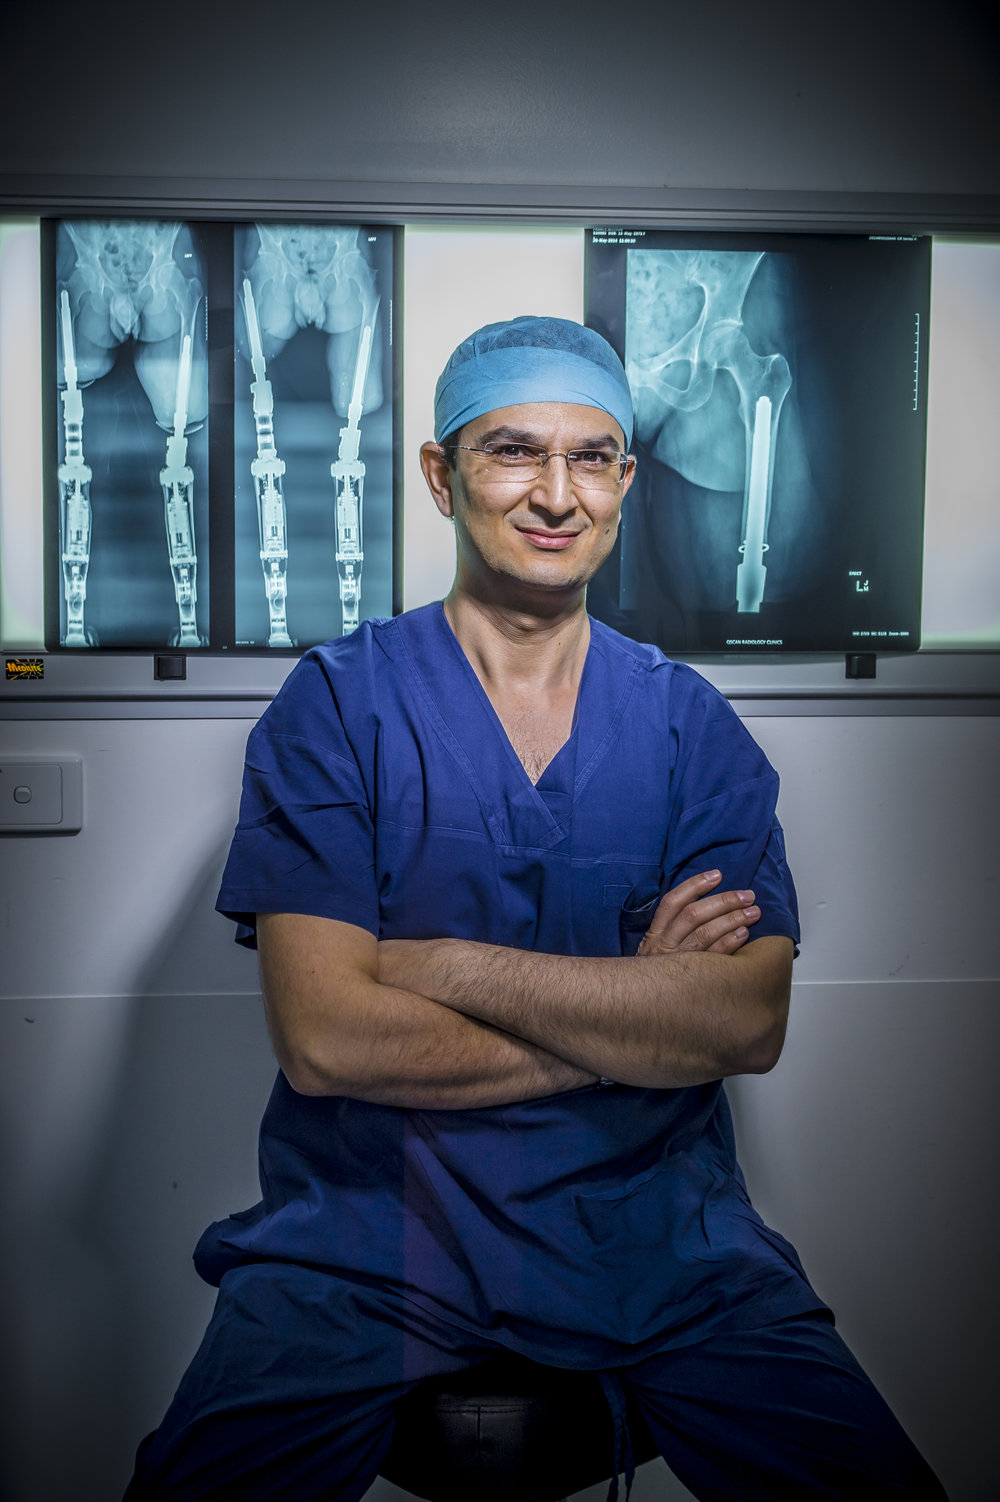 - An Australian-trained Orthopaedic Surgeon and a Squadron Leader in the Australian Air Force Reserve, Munjed is also an Ambassador for the Australian Red Cross, human rights activist and a refugee. He is now one of three surgeons world-wide pioneering a revolutionary technology known as Osseointegration.As a leading surgeon in this complex reconstructive and robotic surgery, Munjed has helped more than 450 amputees from around the world to improve mobility, reduce pain and enhance their overall quality of life.